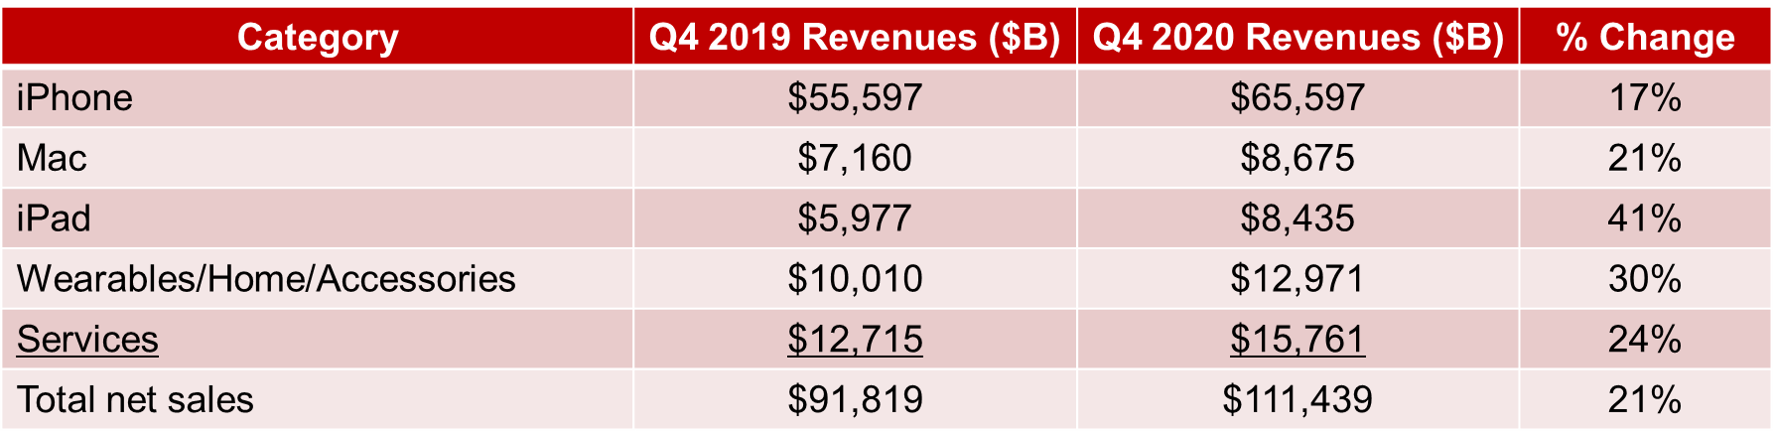 Counterpoint Research Apple Revenues Q4 2019 vs. Q4 2020